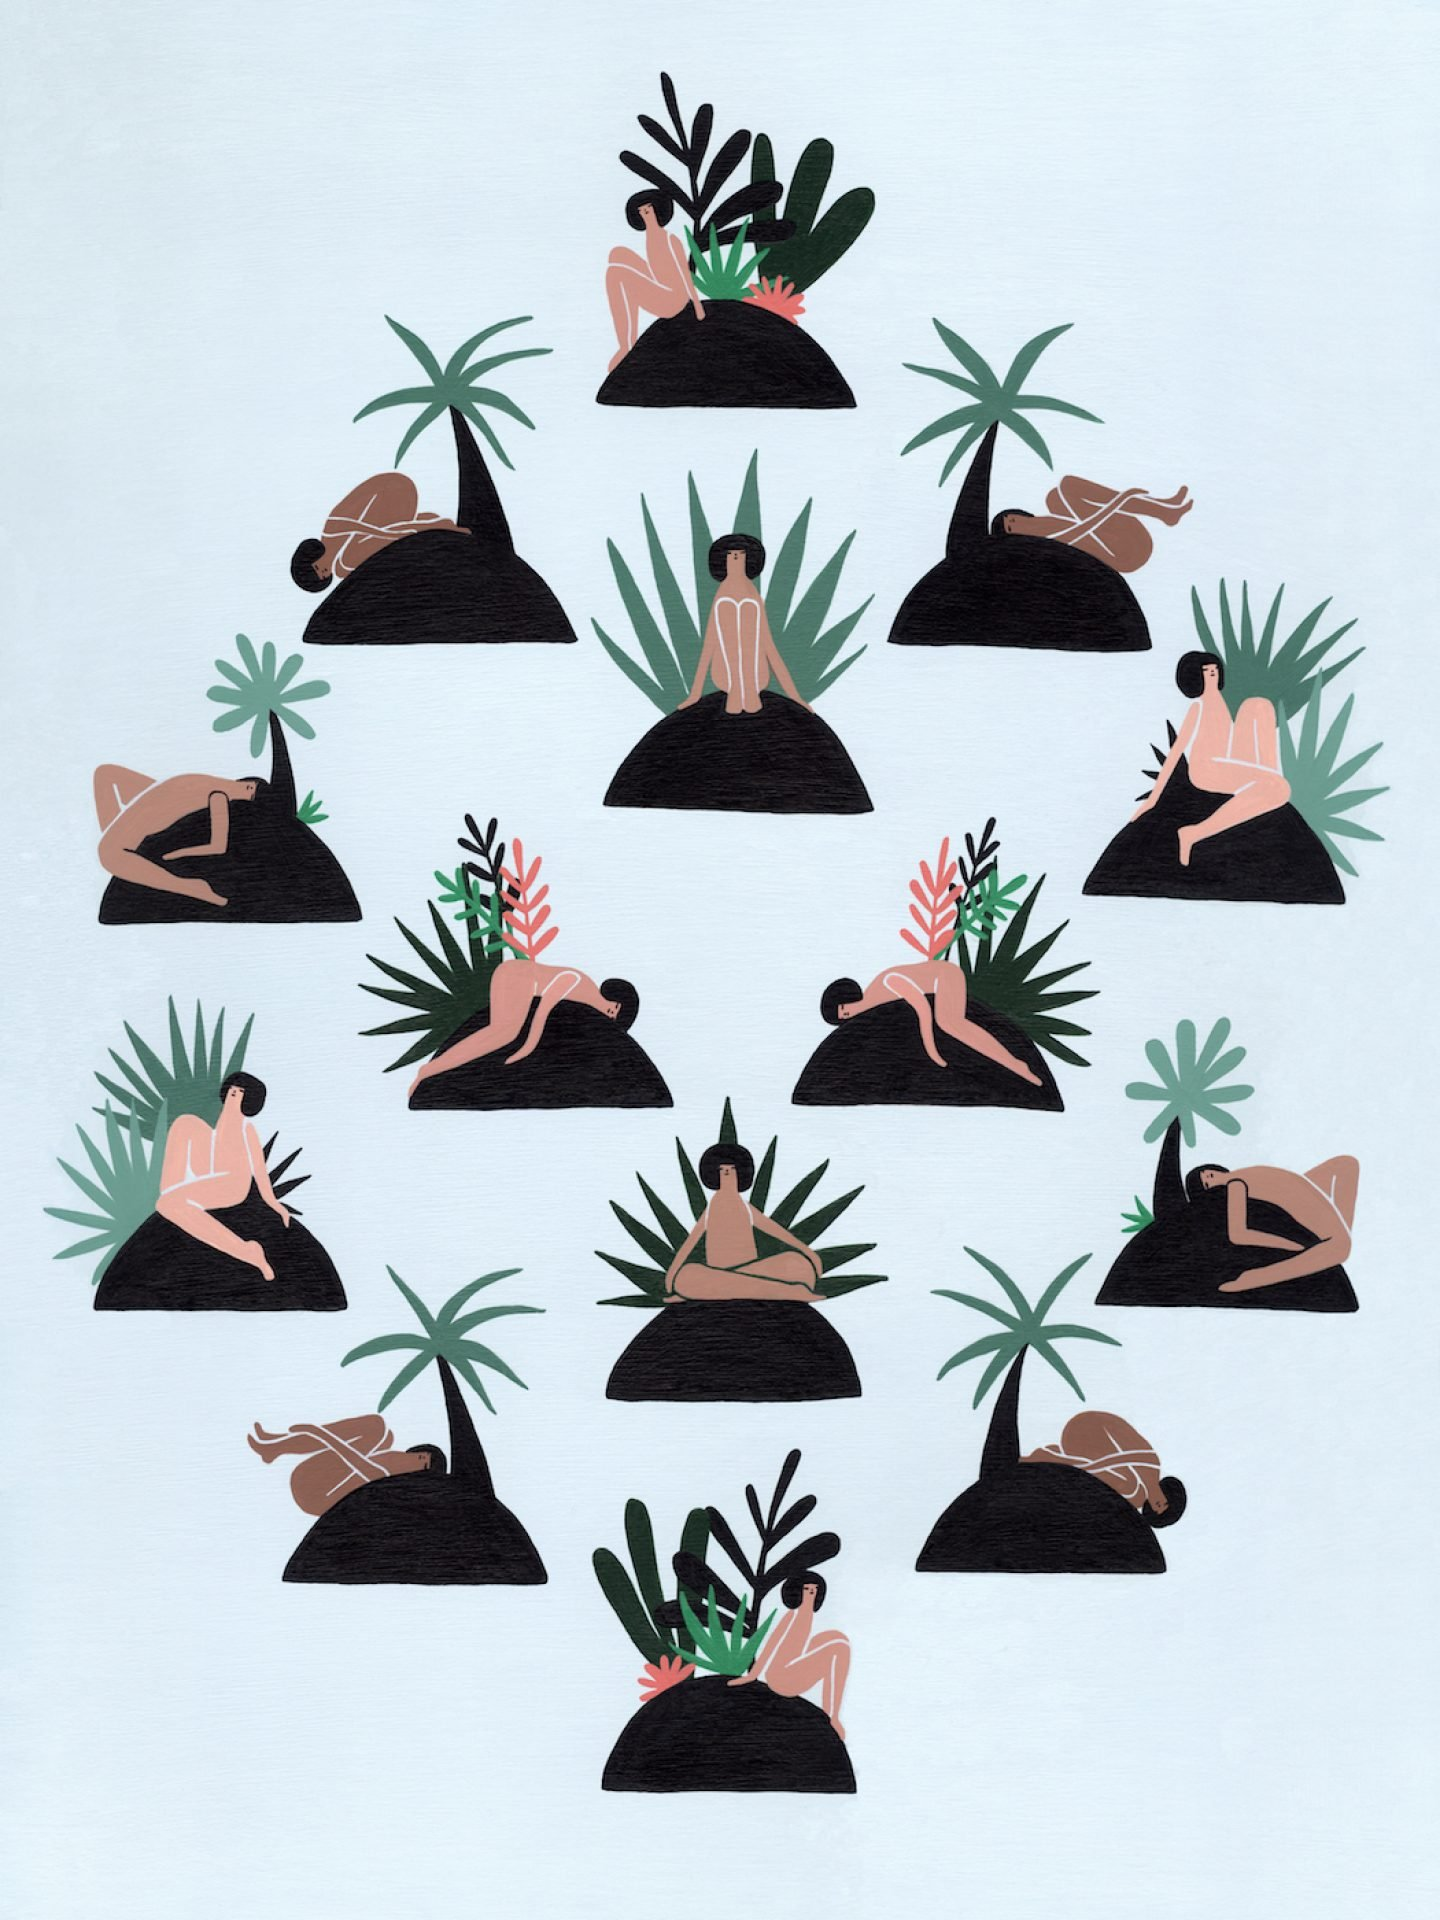 Laura_Berger_Illustration_Private Islands